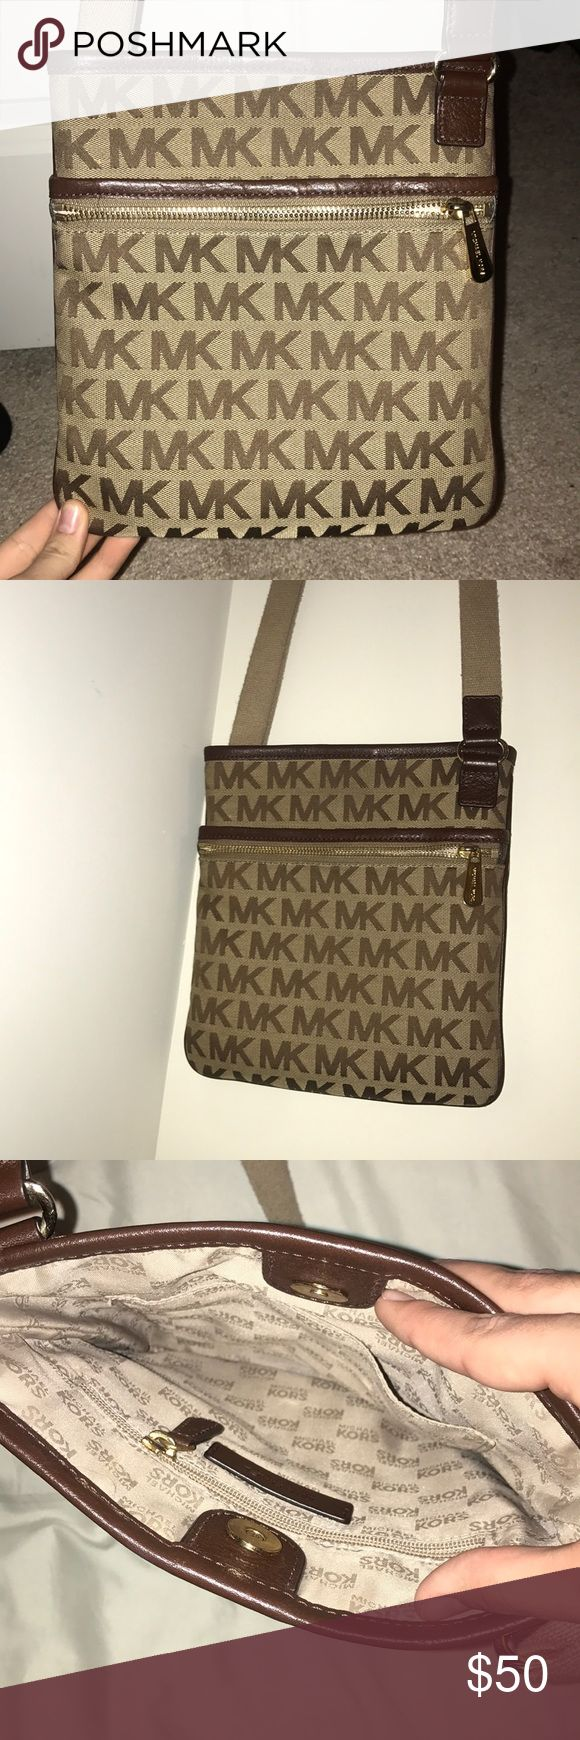 ***Micheal Kors Crossbody Purse*** Barely used Micheal Kors crossbody in good condition KORS Michael Kors Bags Crossbody Bags